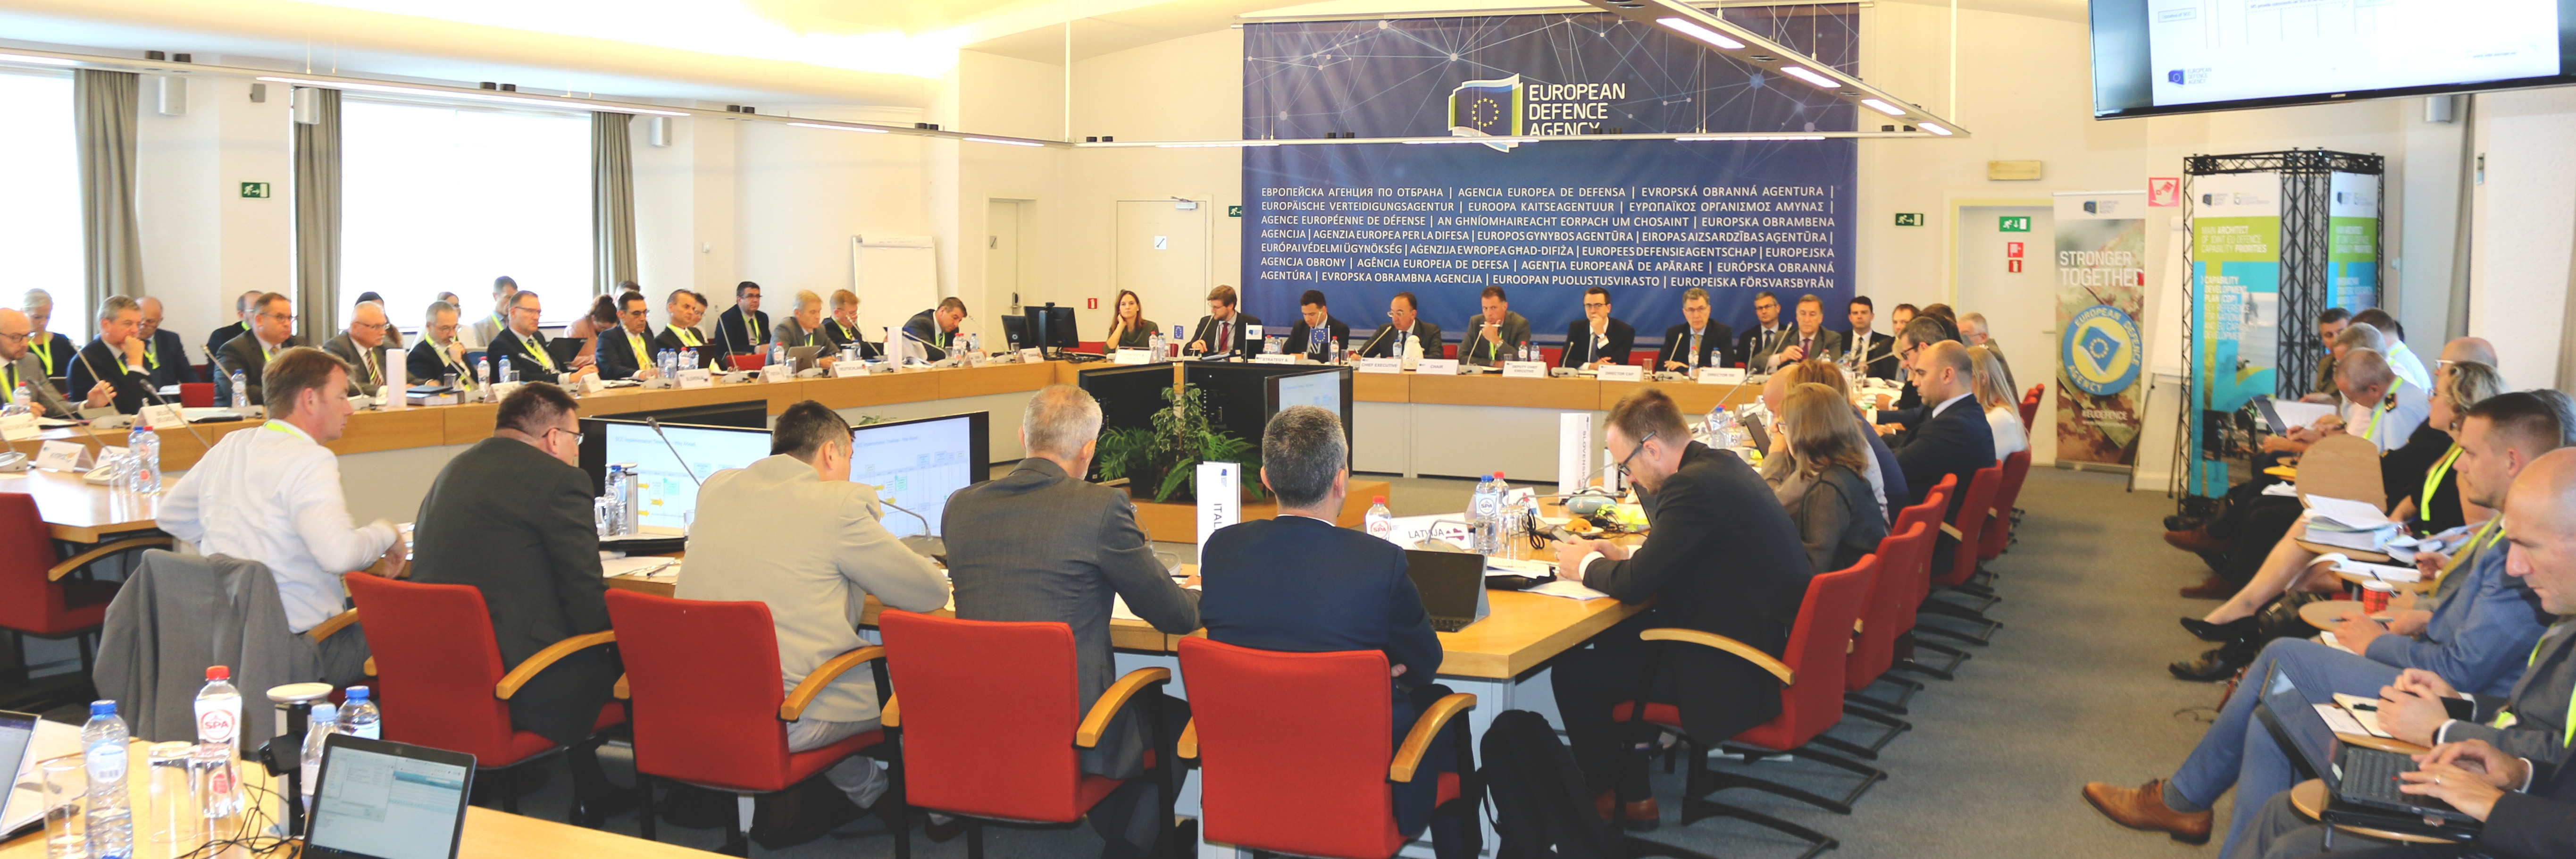 Strategic Context Cases approved for implementation of EU Capability Development Priorities